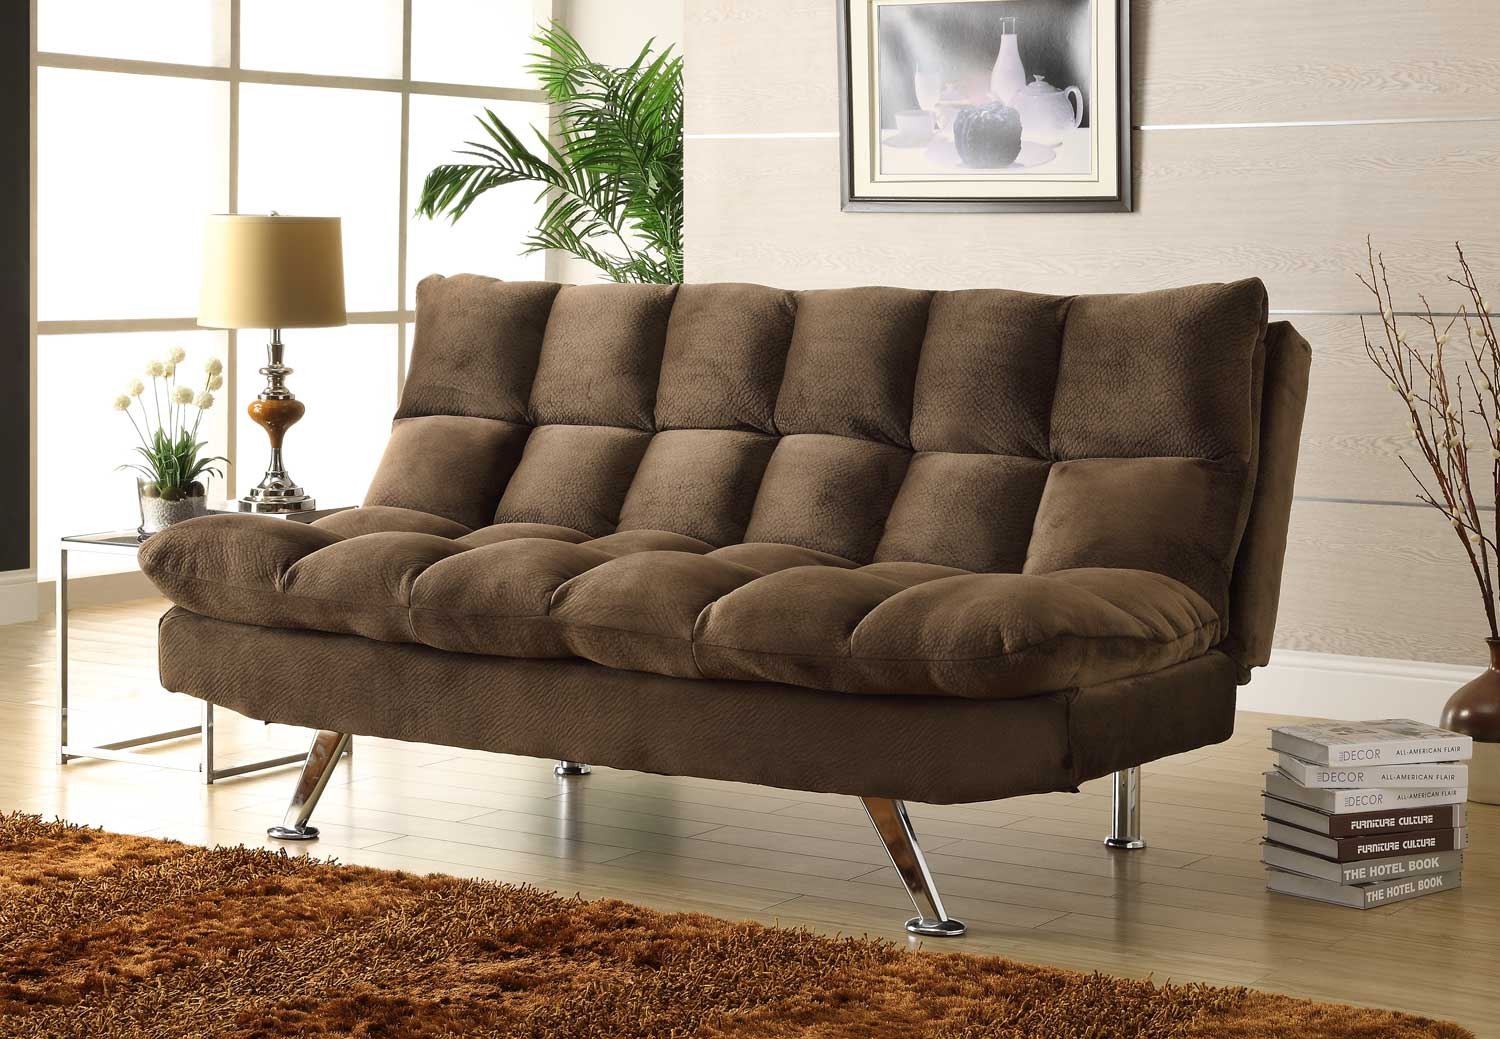 Homelegance Jazz Click-Clack Sofa Bed - Chocolate - Textured Plush Microfiber